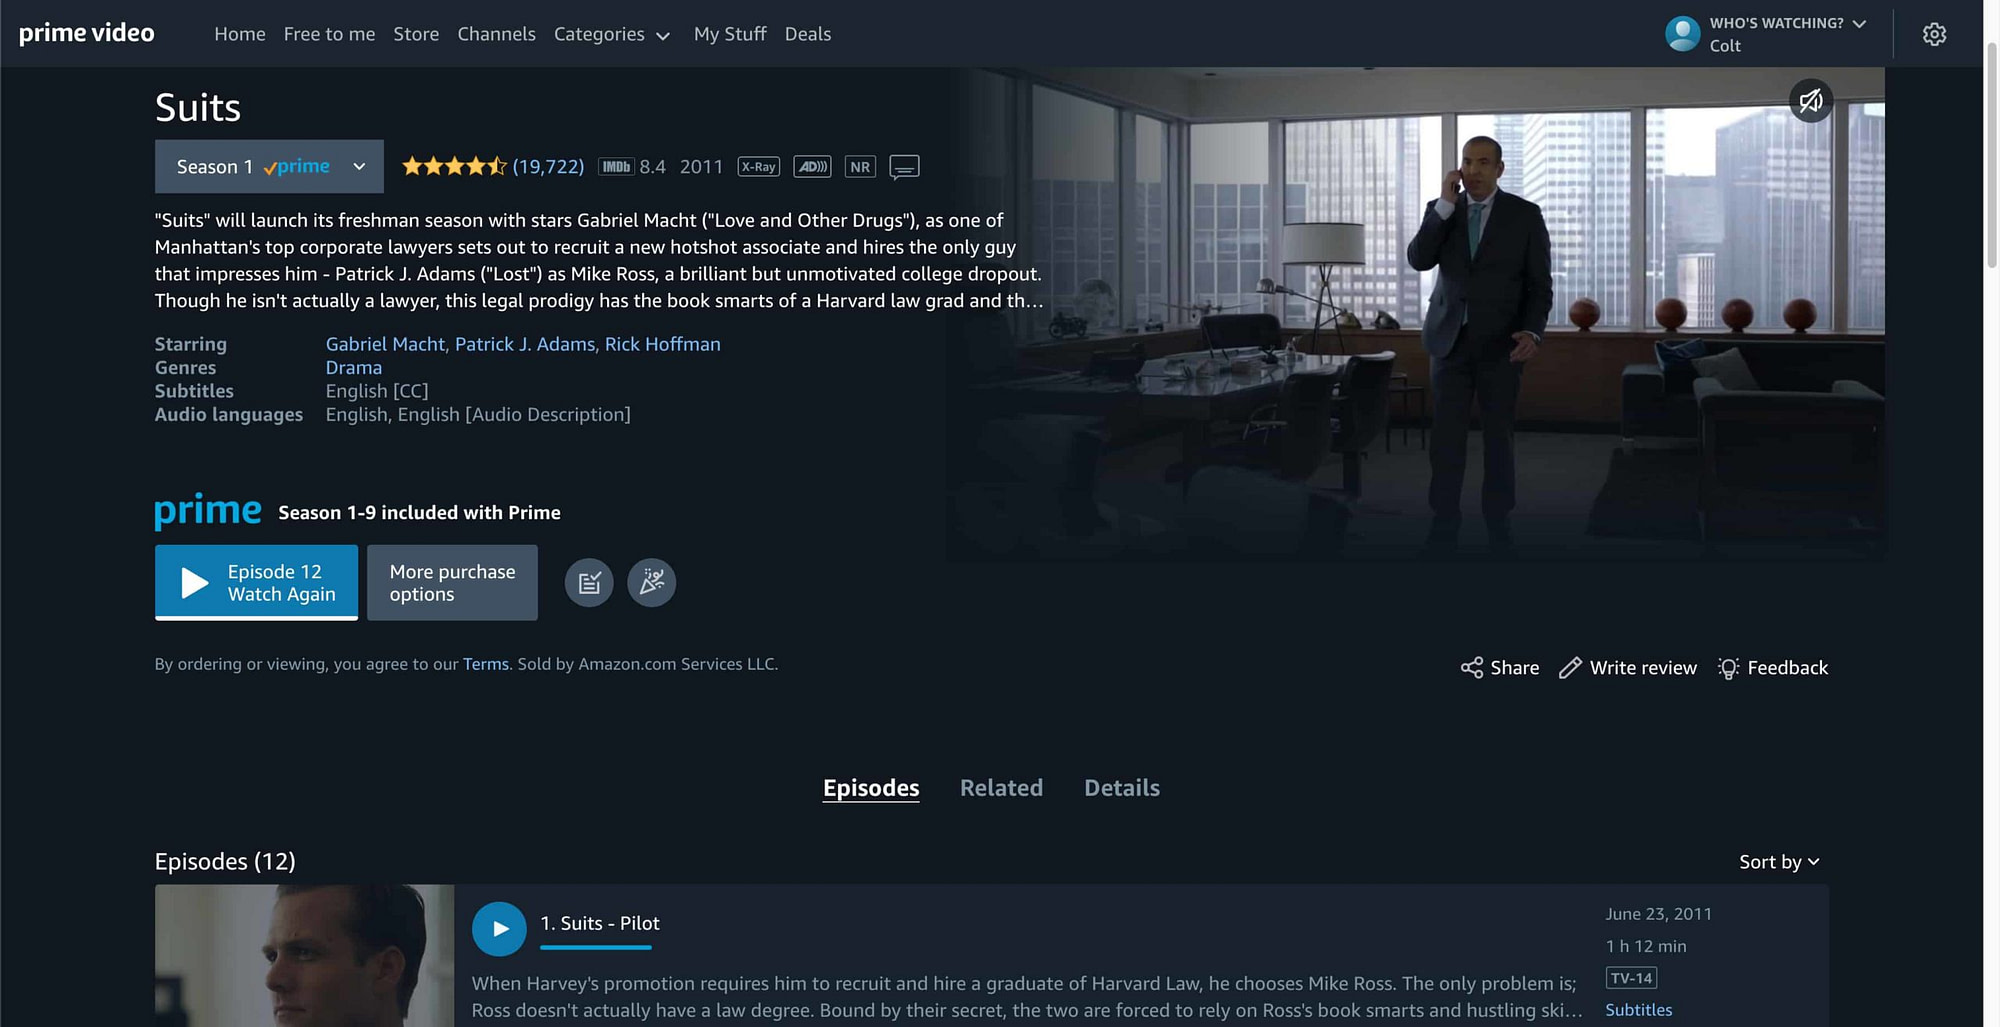 Suits On Amazon Prime scaled